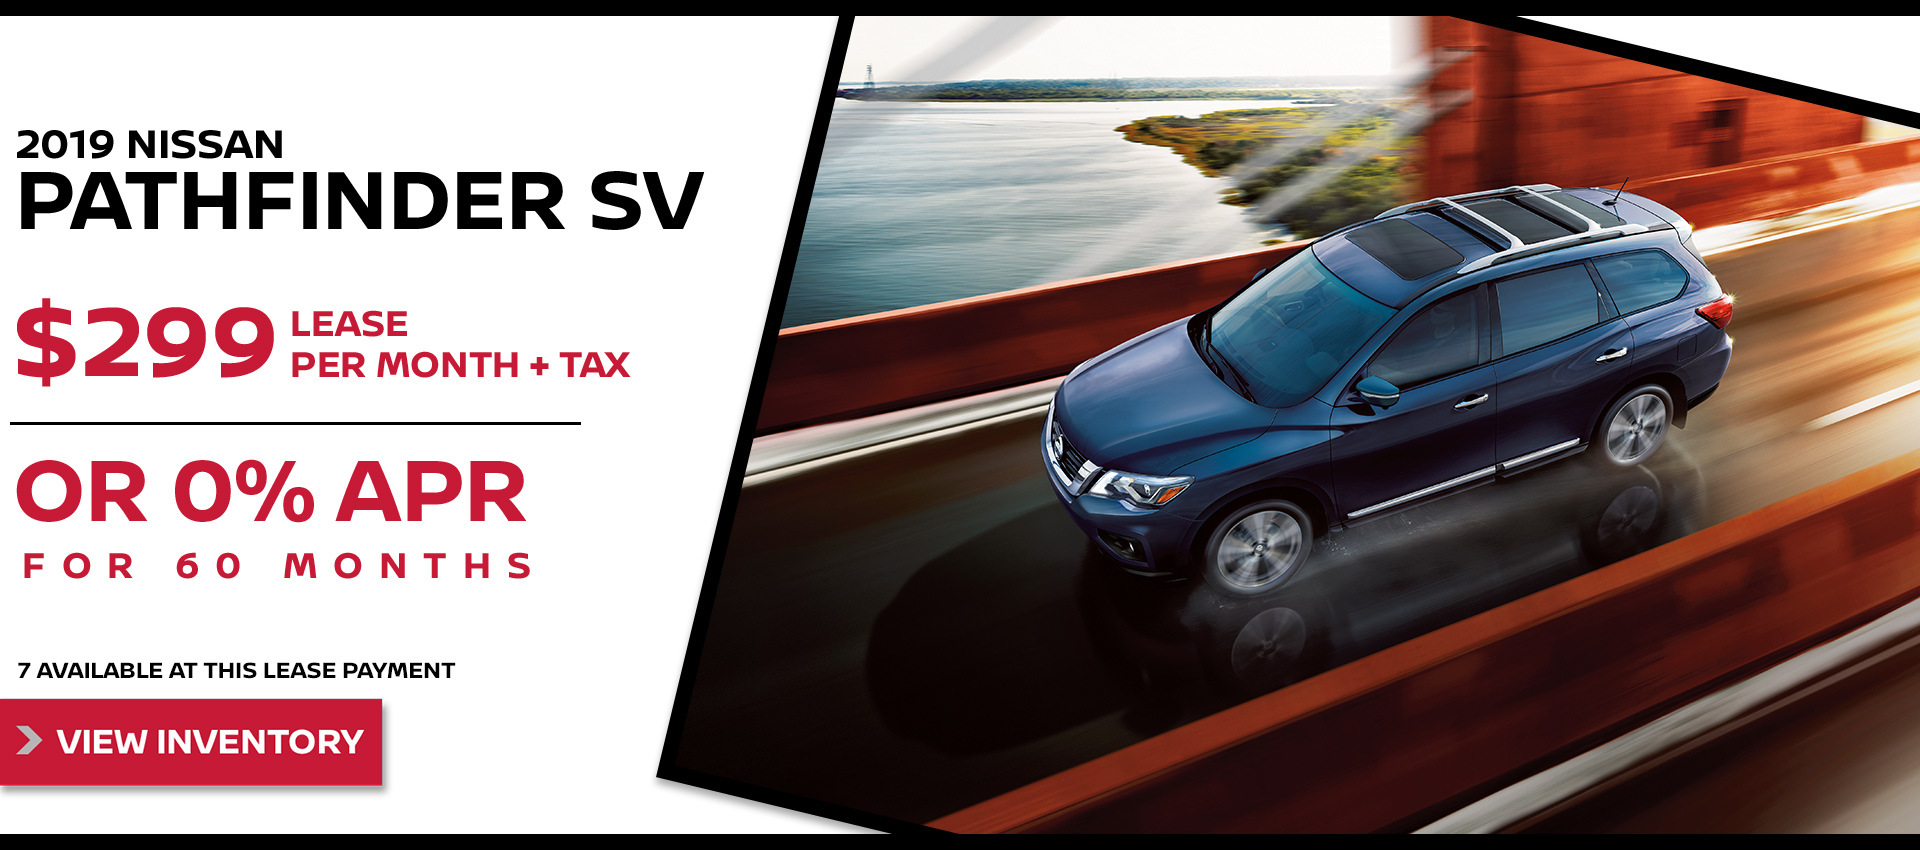 Mossy Nissan - Nissan Pathfinder $299 Lease HP